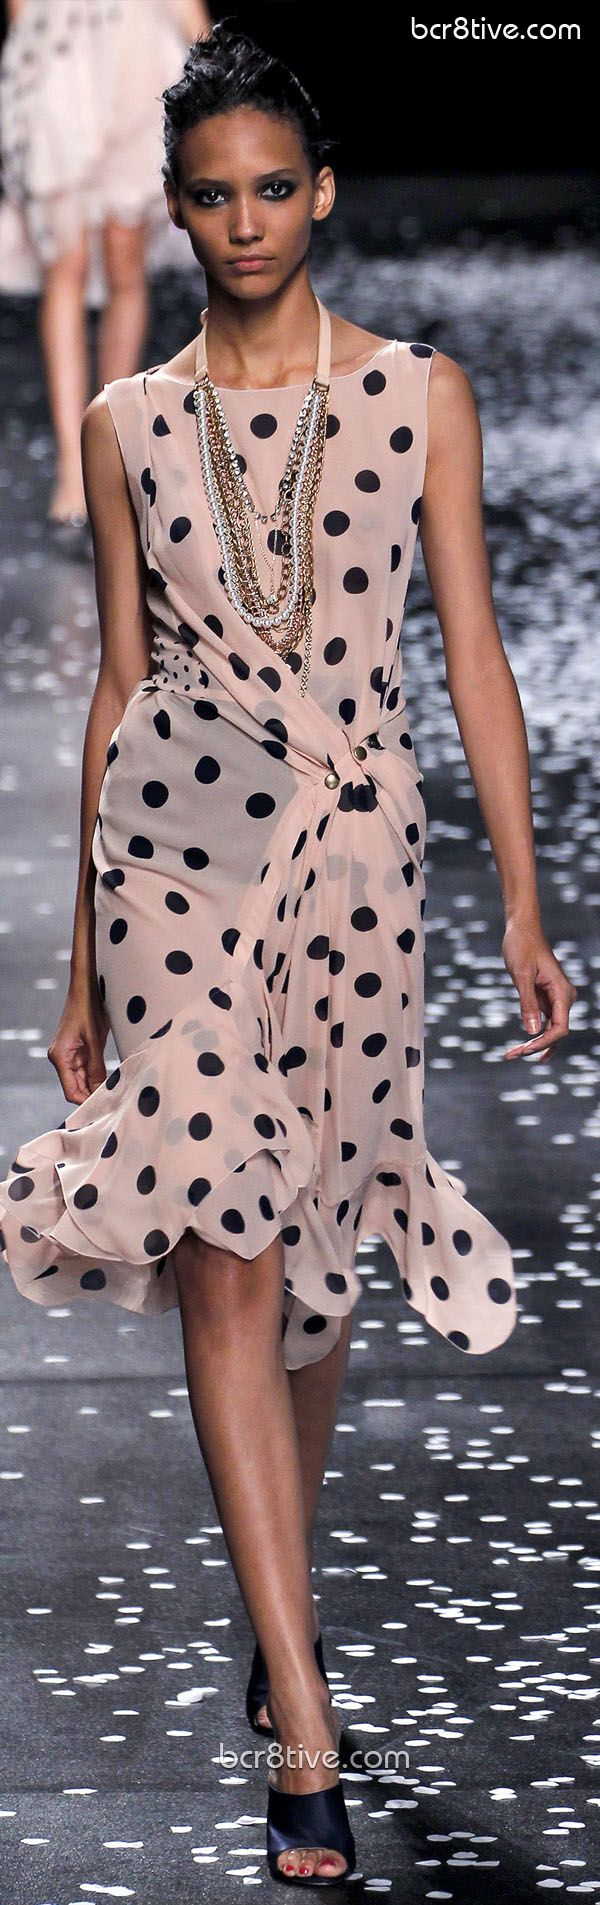 My Favorites from the Nina Ricci Spring Summer 2013 Ready To Wear Collection